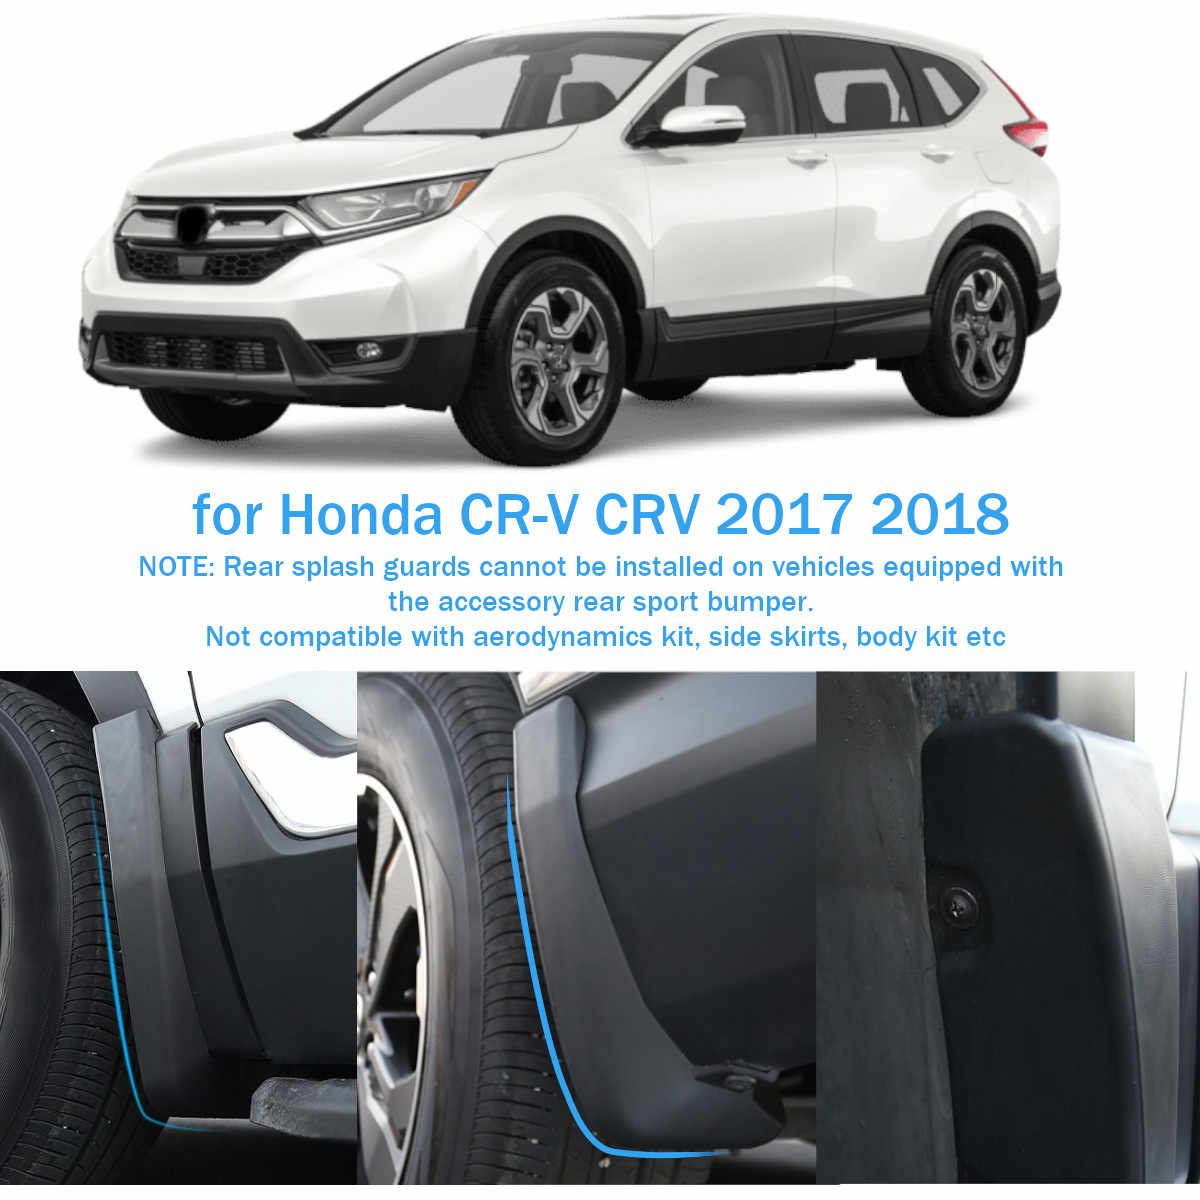 Car Mudflaps Fender Flares For Honda//CR-V CRV 2017 2018 2019 2020 Mudguards Mud Flaps Splash Guards